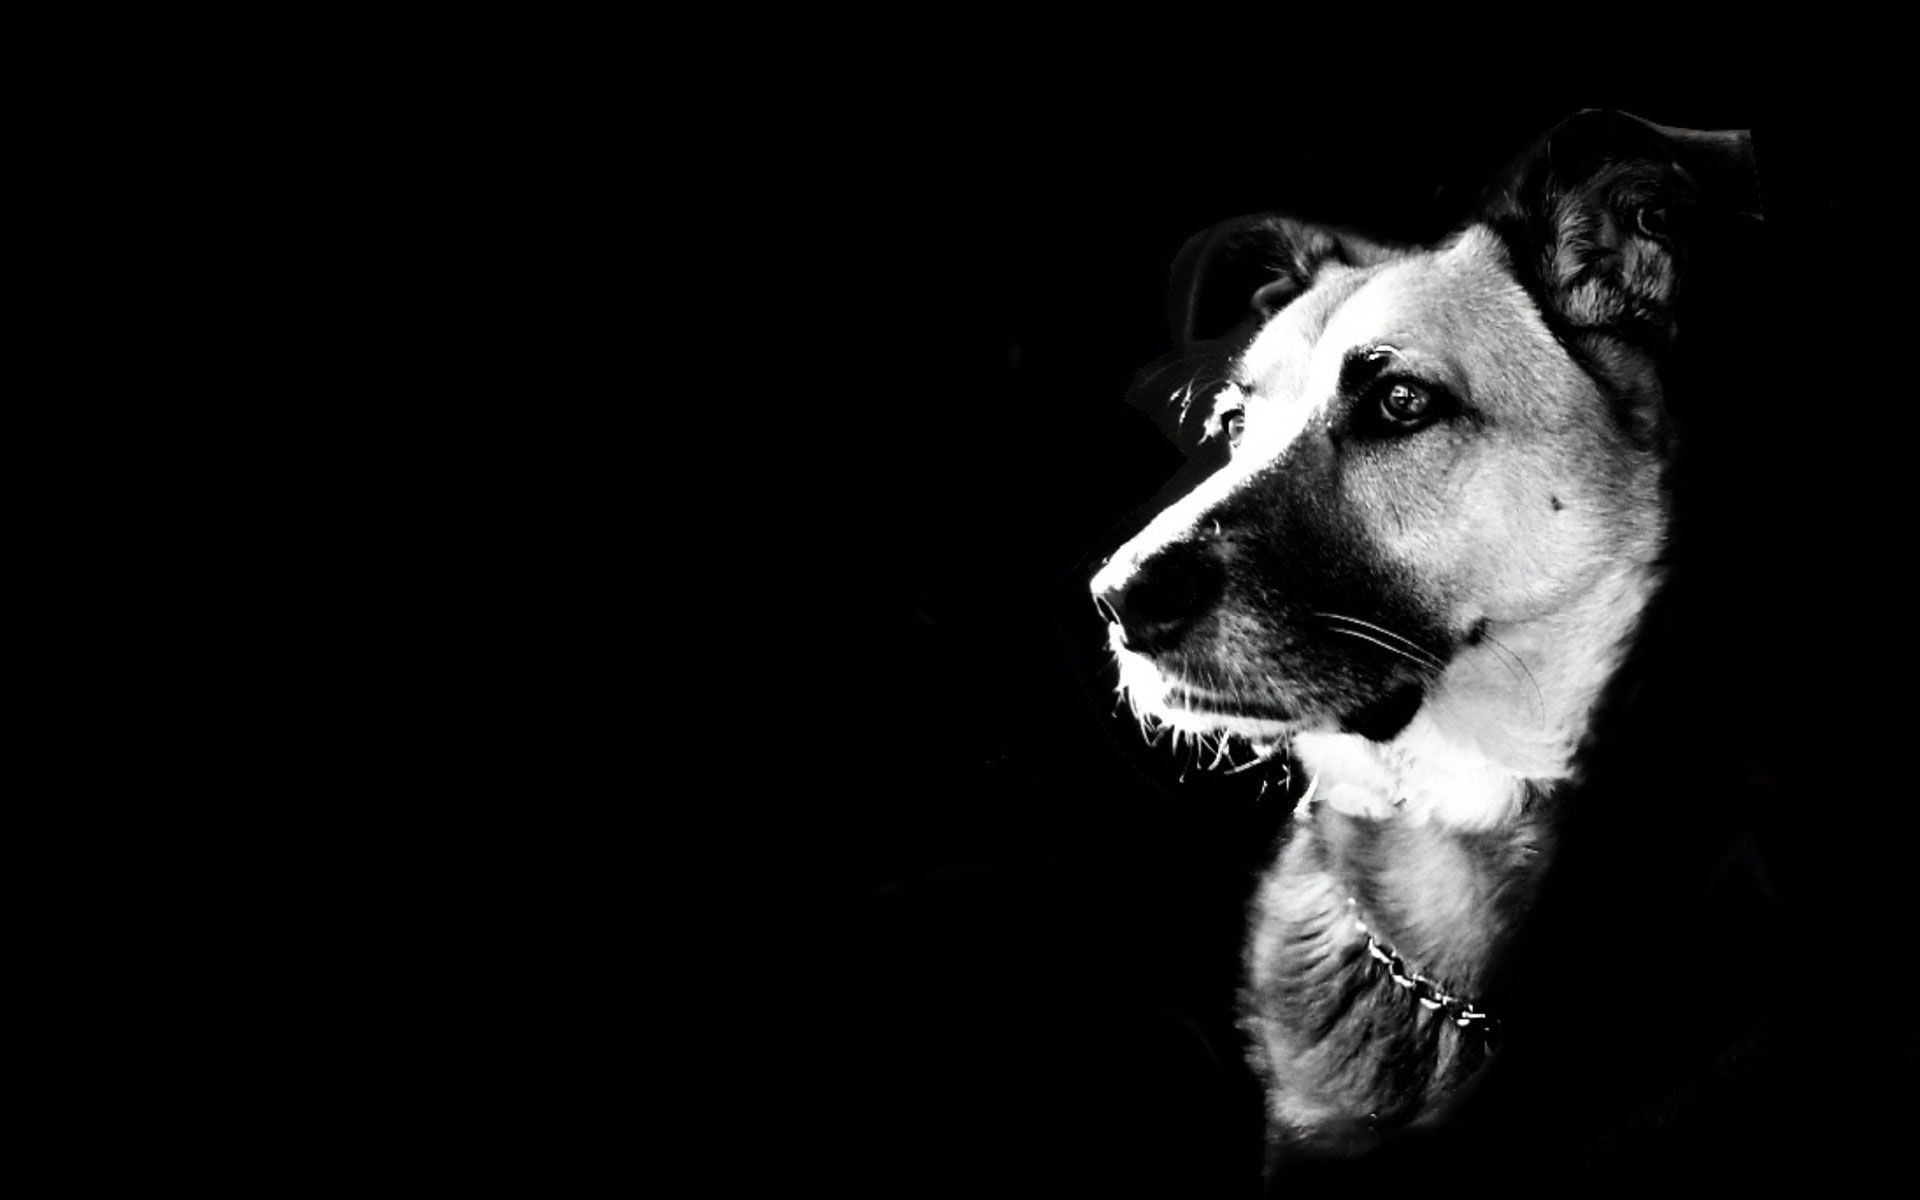 Black And White Animal Wallpapers – Wallpaper Cave